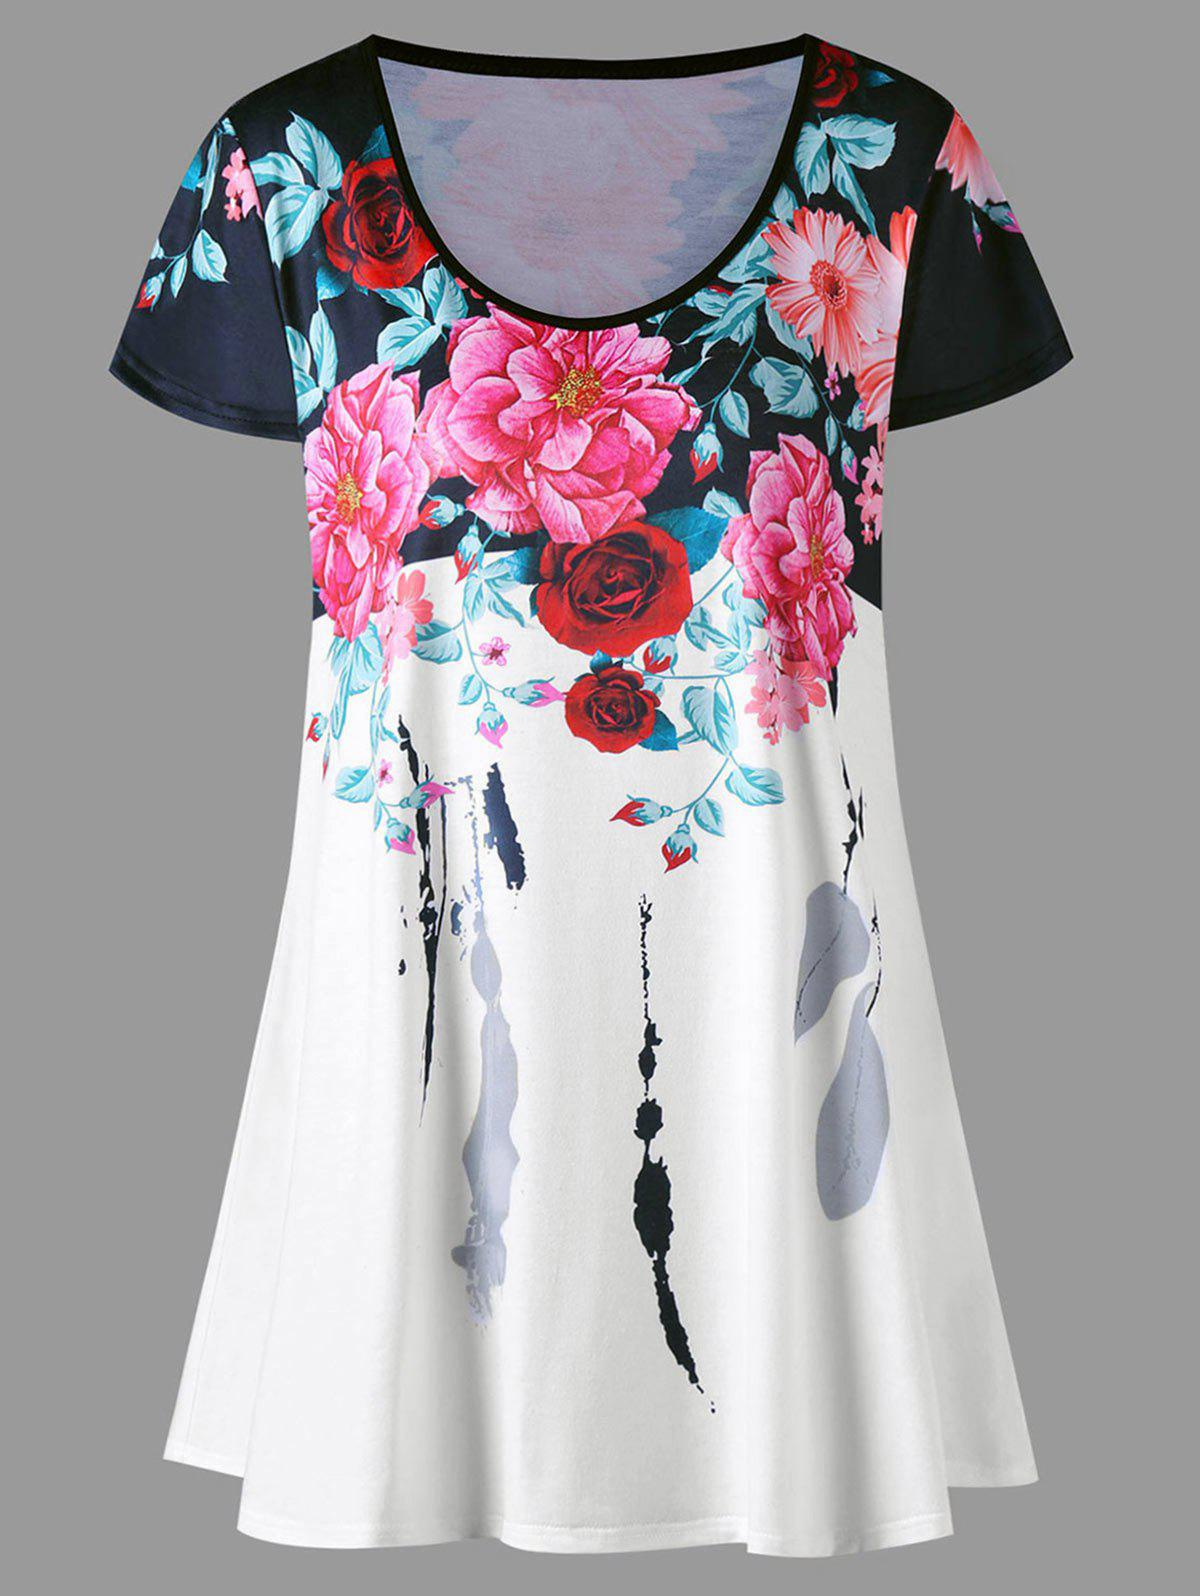 Plus Size Floral Longline TopWOMEN<br><br>Size: 5XL; Color: COLORMIX; Material: Polyester,Spandex; Shirt Length: Long; Sleeve Length: Short; Collar: Scoop Neck; Style: Casual; Season: Summer; Pattern Type: Floral; Weight: 0.2300kg; Package Contents: 1 x T-shirt;